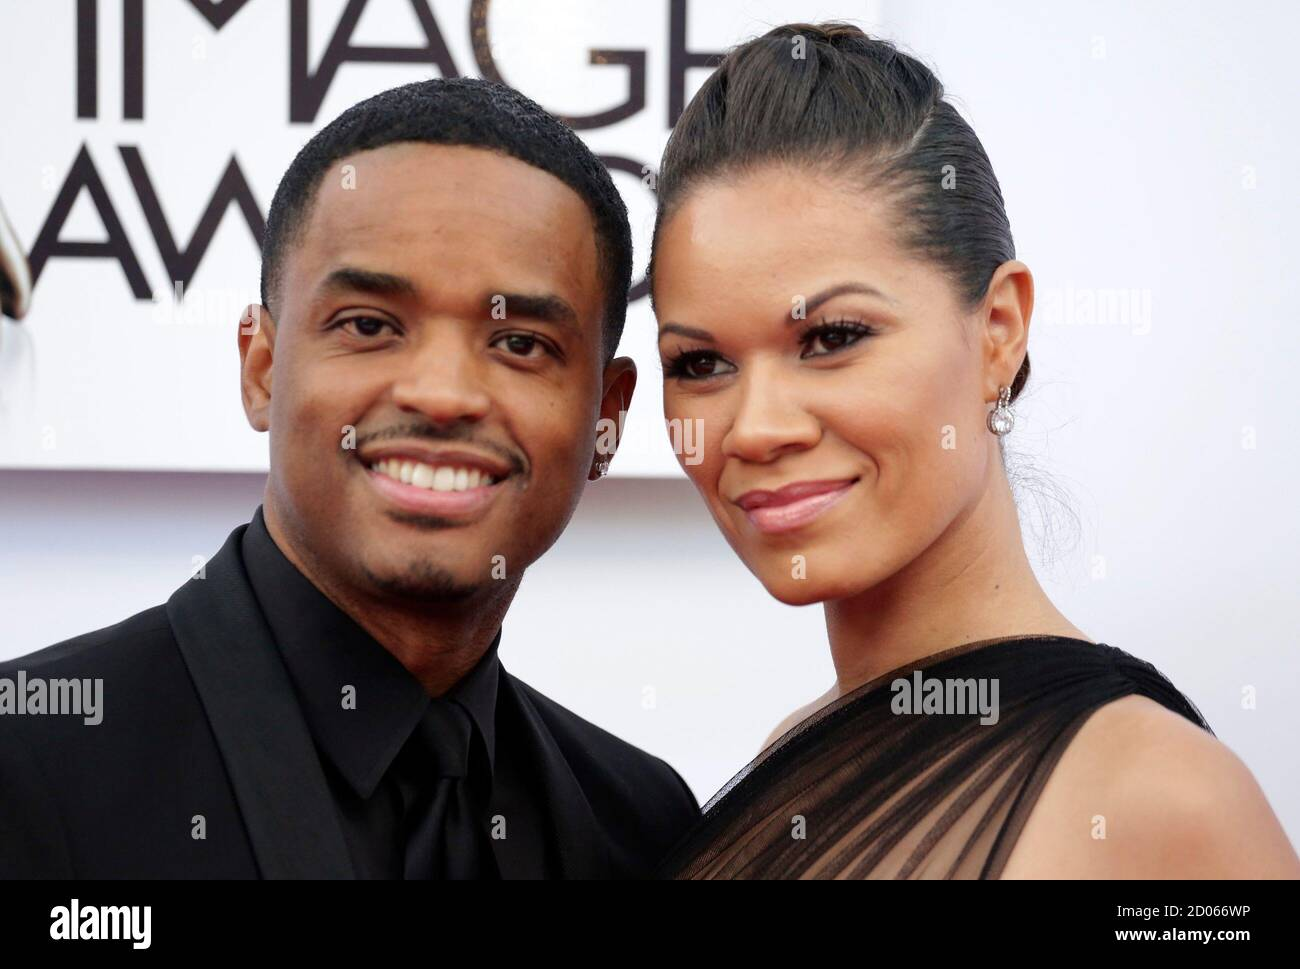 Tomasina Parrott High Resolution Stock Photography And Images Alamy She has been married to larenz tate since november 30, 2006. https www alamy com actor larenz tate and his wife tomasina parrott arrive at the 46th naacp image awards in pasadena california february 6 2015 reutersjonathan alcorn united states tags entertainment imageawards arrivals image378765234 html